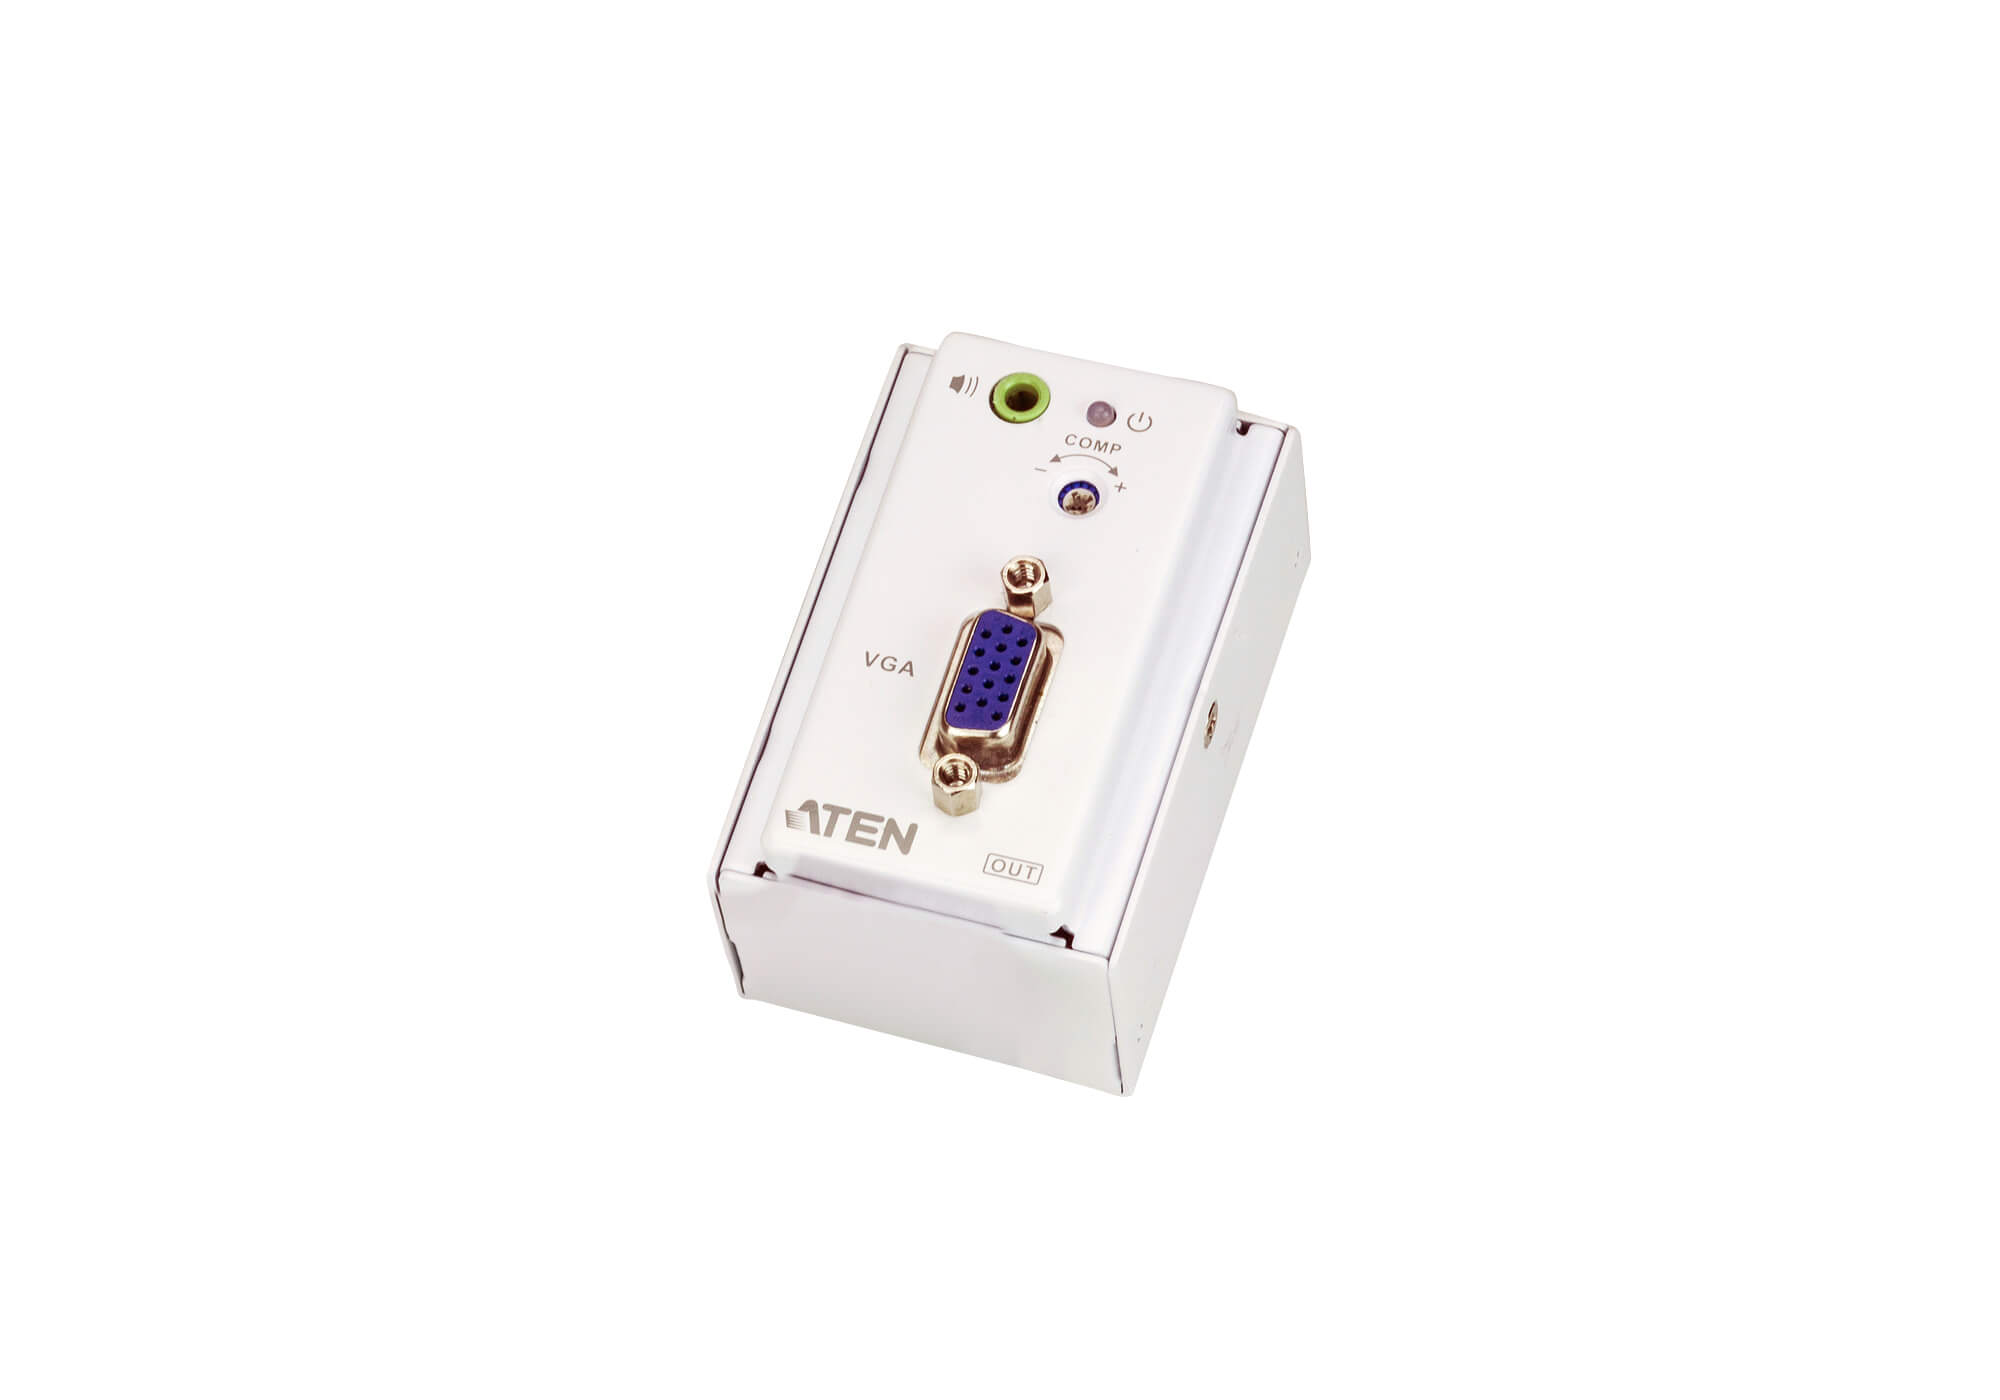 VGA/Audio Cat 5 Extender with MK Wall Plate (1280 x 1024 @150 m)-2